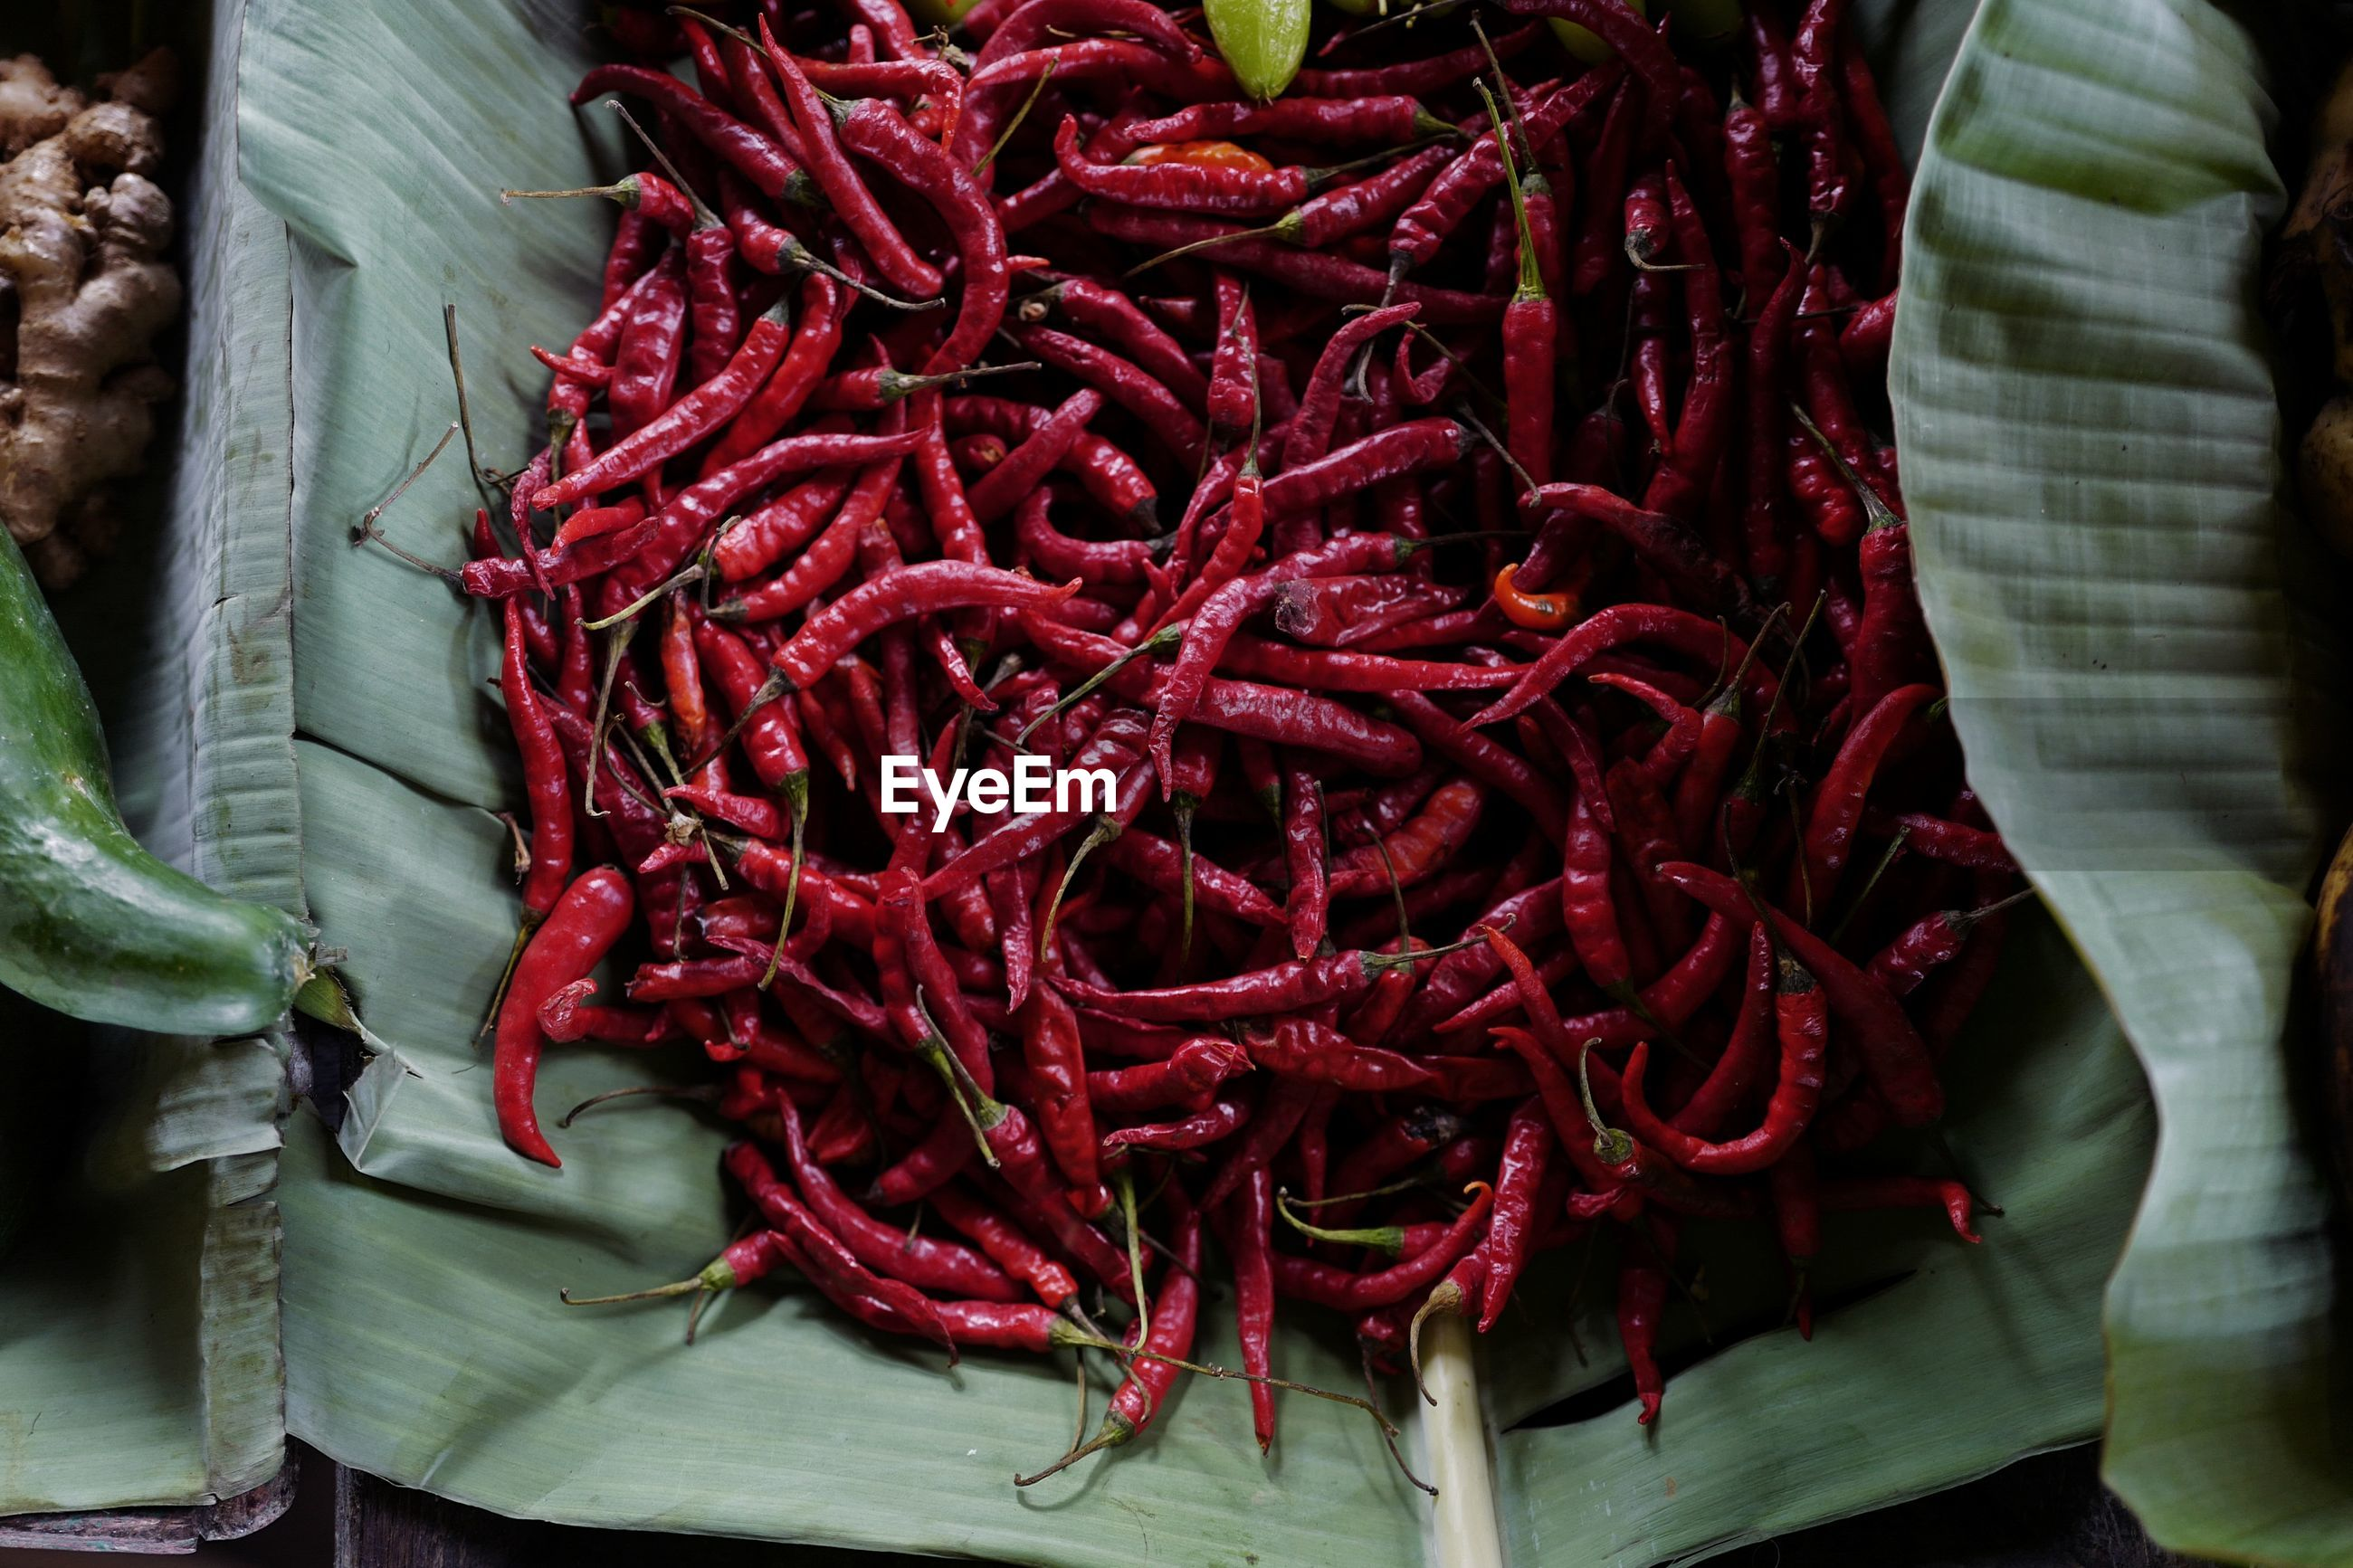 HIGH ANGLE VIEW OF RED CHILI PEPPERS FOR SALE AT MARKET